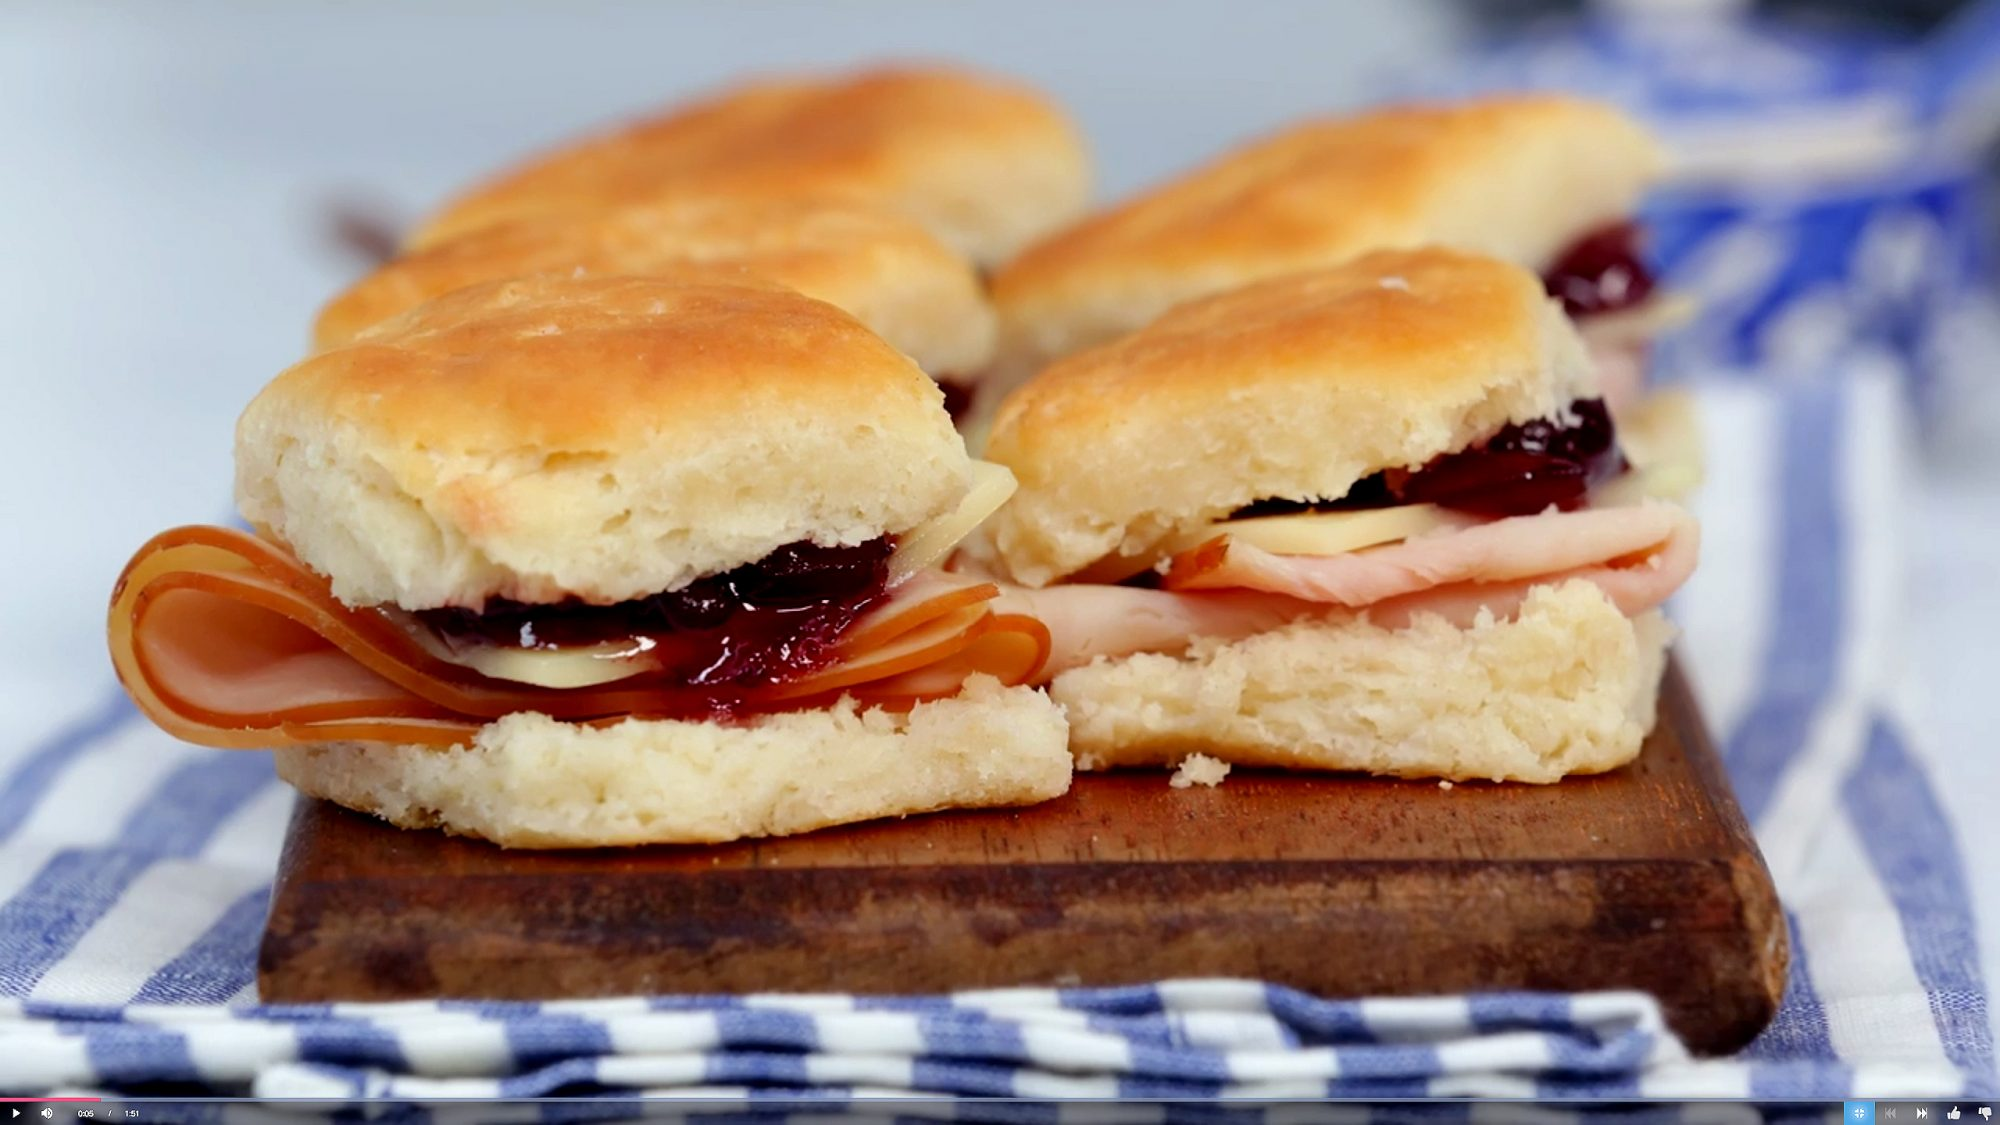 Mini ham and cheese biscuits